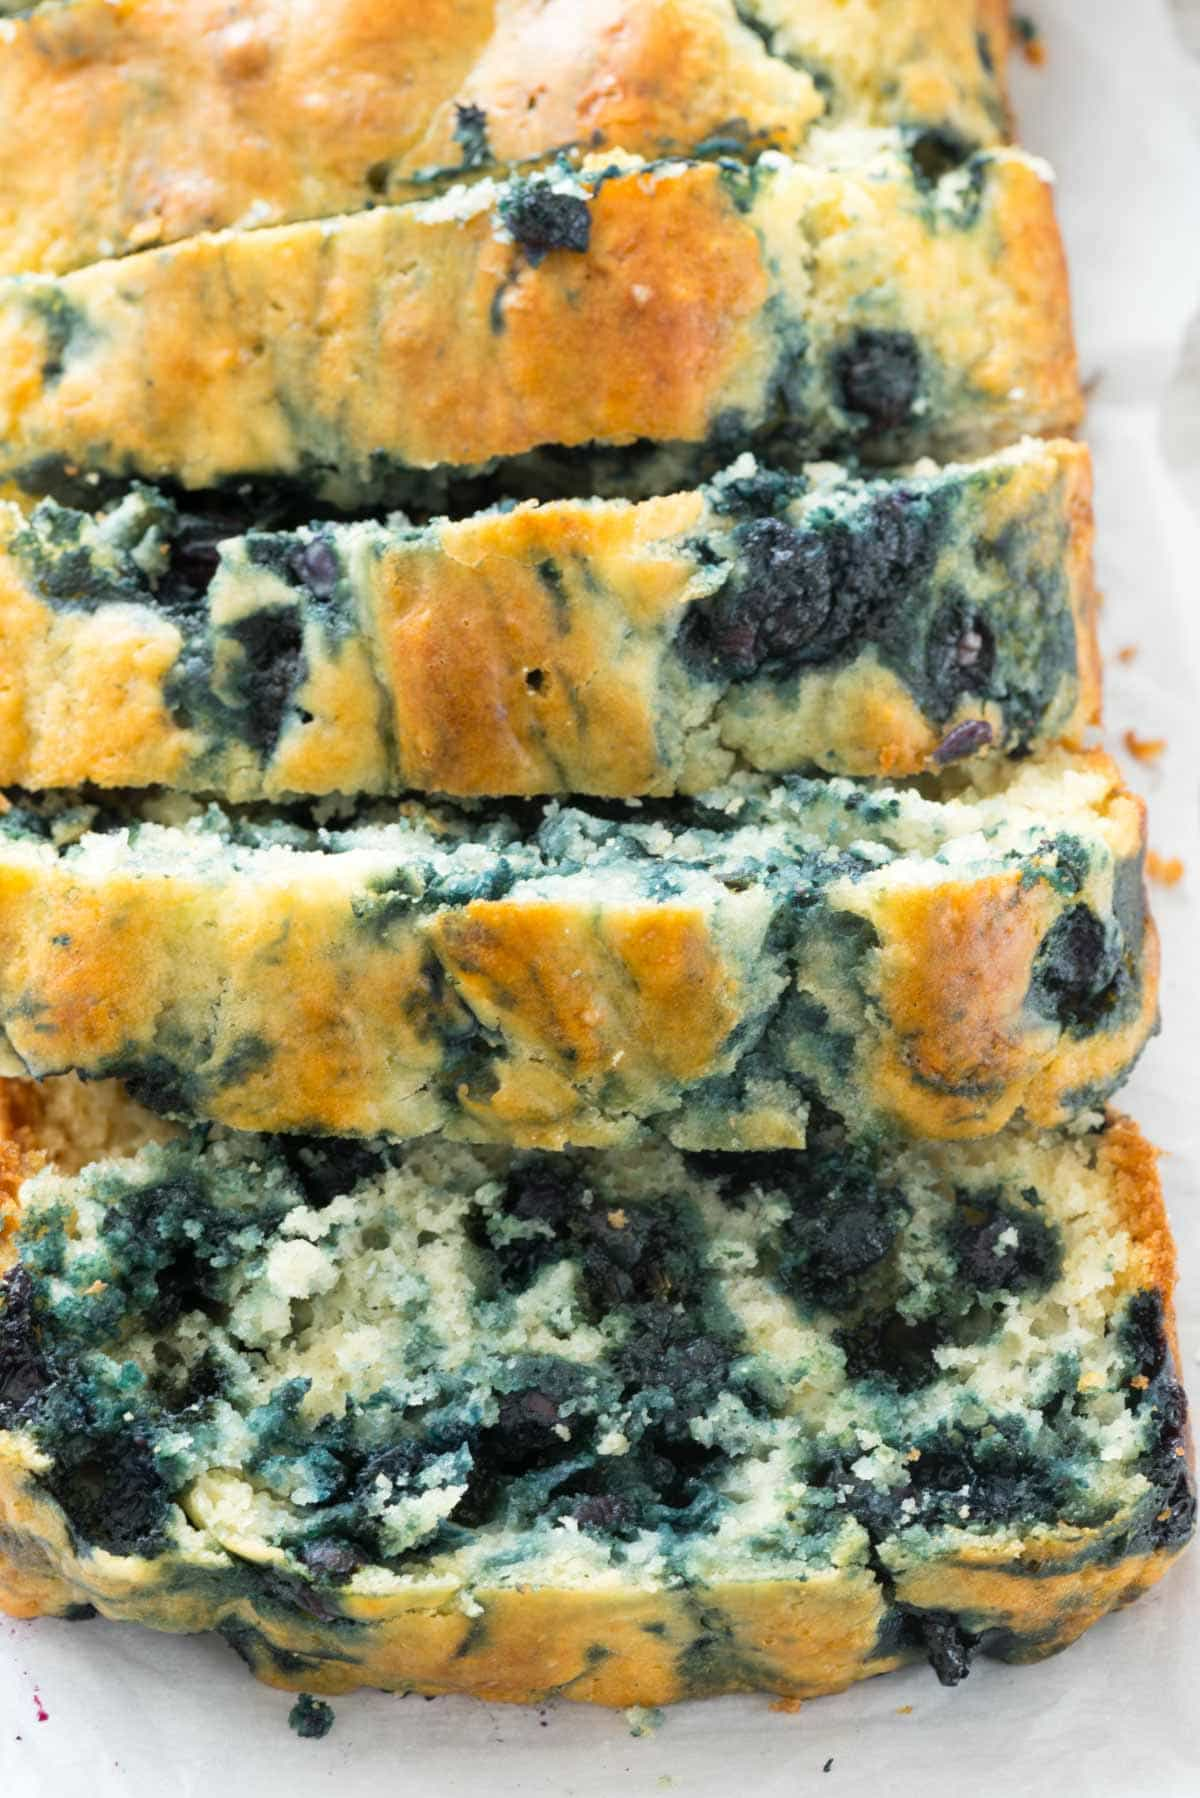 Blueberry Quick Bread - this easy bread recipe is full of blueberries and is sugar-free! It's the perfect breakfast; like a blueberry muffin but bread!